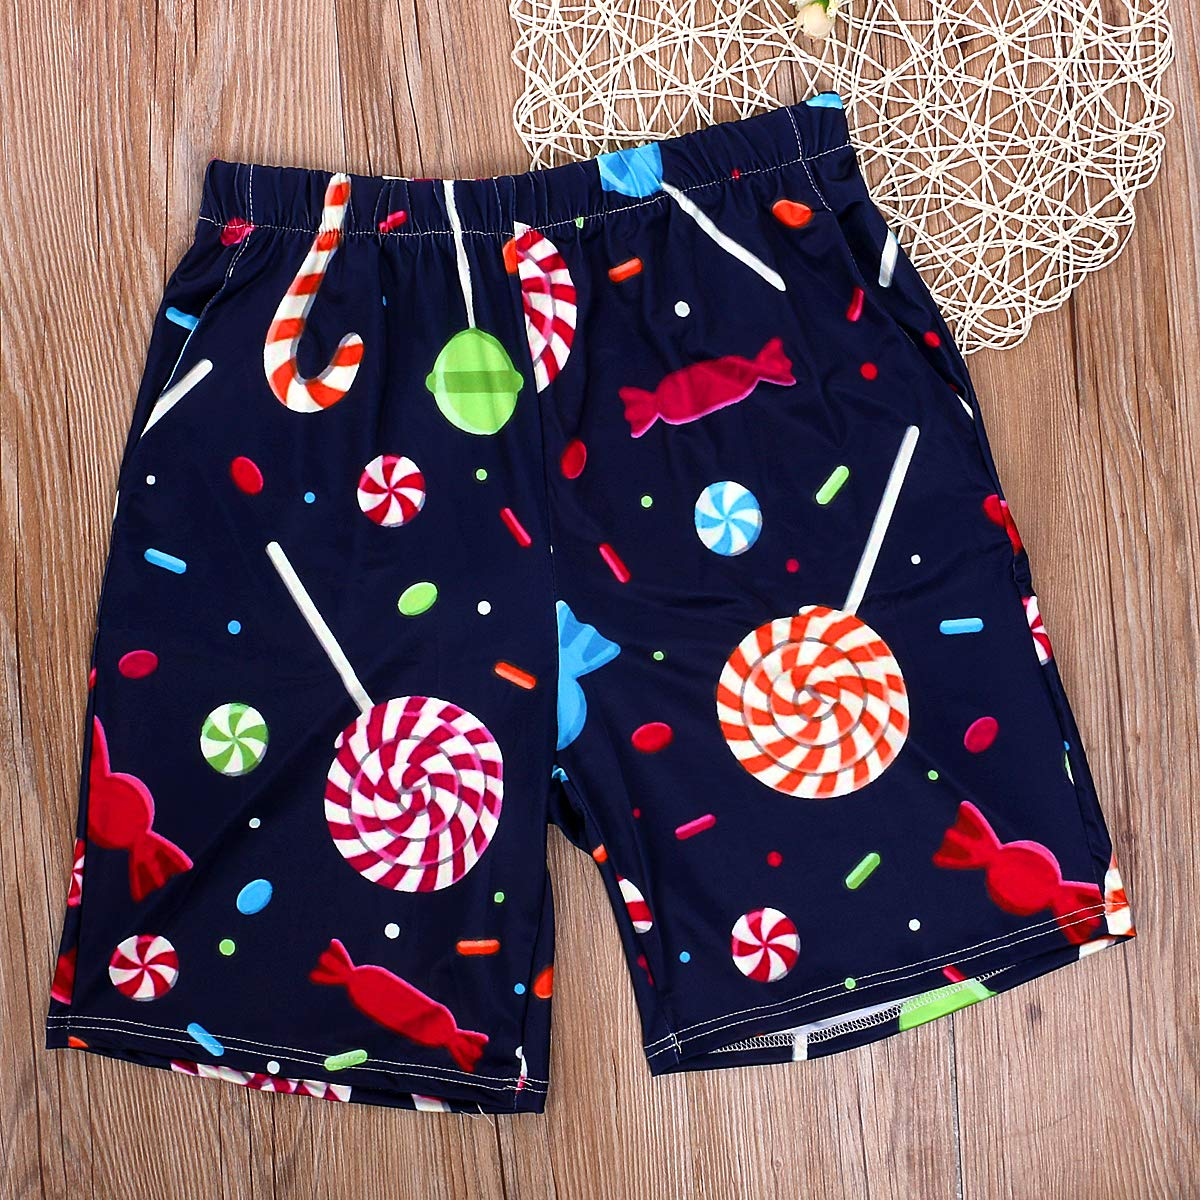 Cute Lollipop Family Matching Swimsuit Mother and Daughter Swimwear Father and Son Matching Swim Trunks